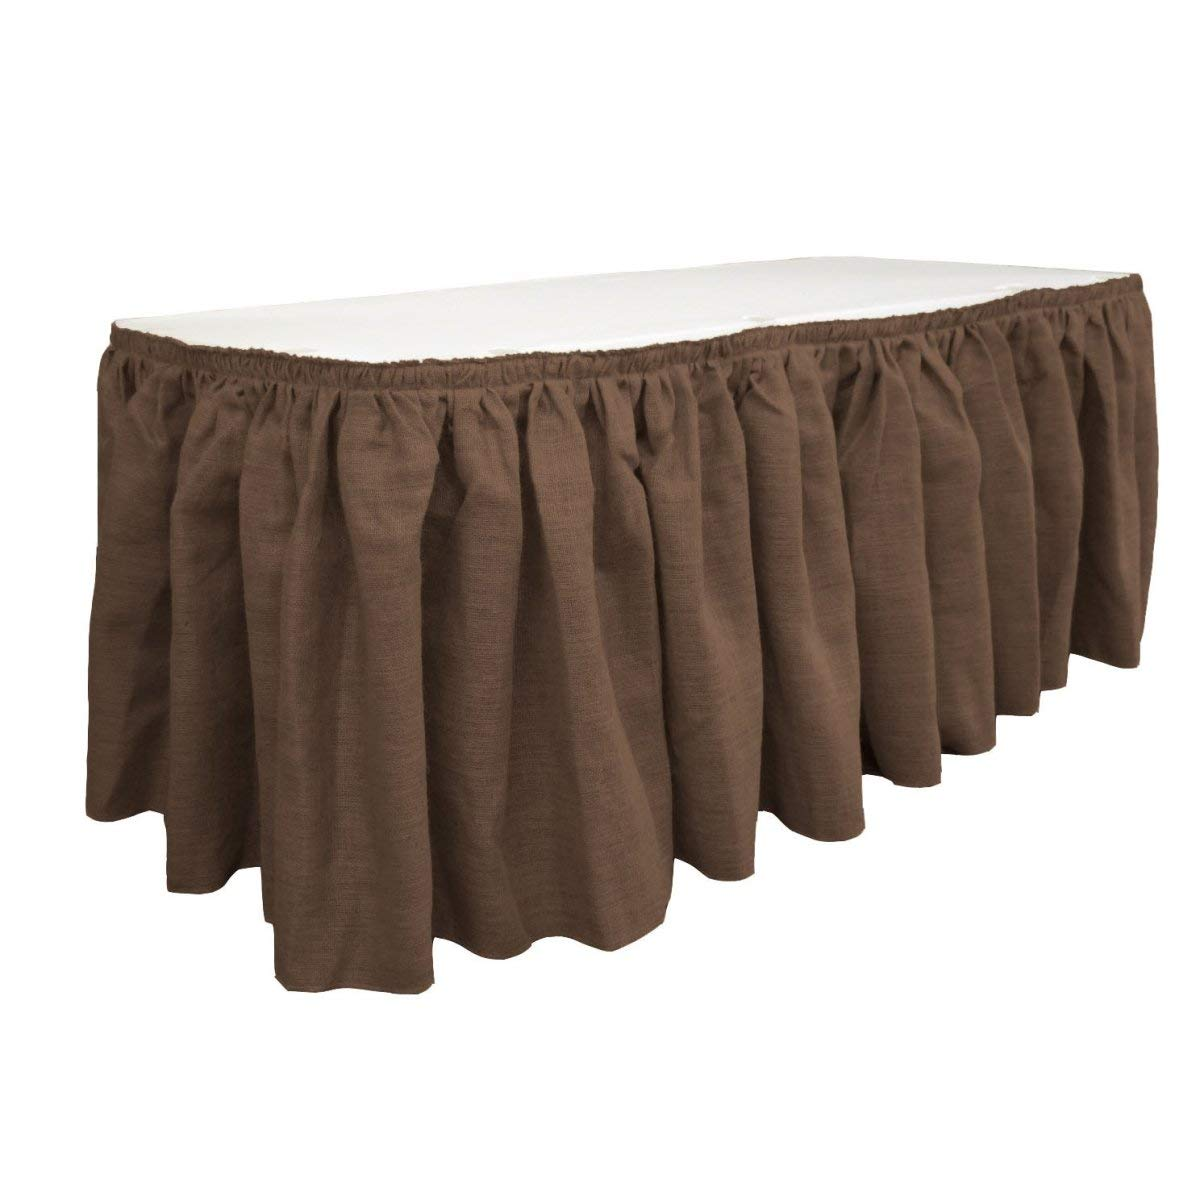 LA Linen SkirtBurlap17x29-10Lclips-Brown Burlap Table Skirt with 10 L-Clips44; Brown - 17 ft. x 29 in.